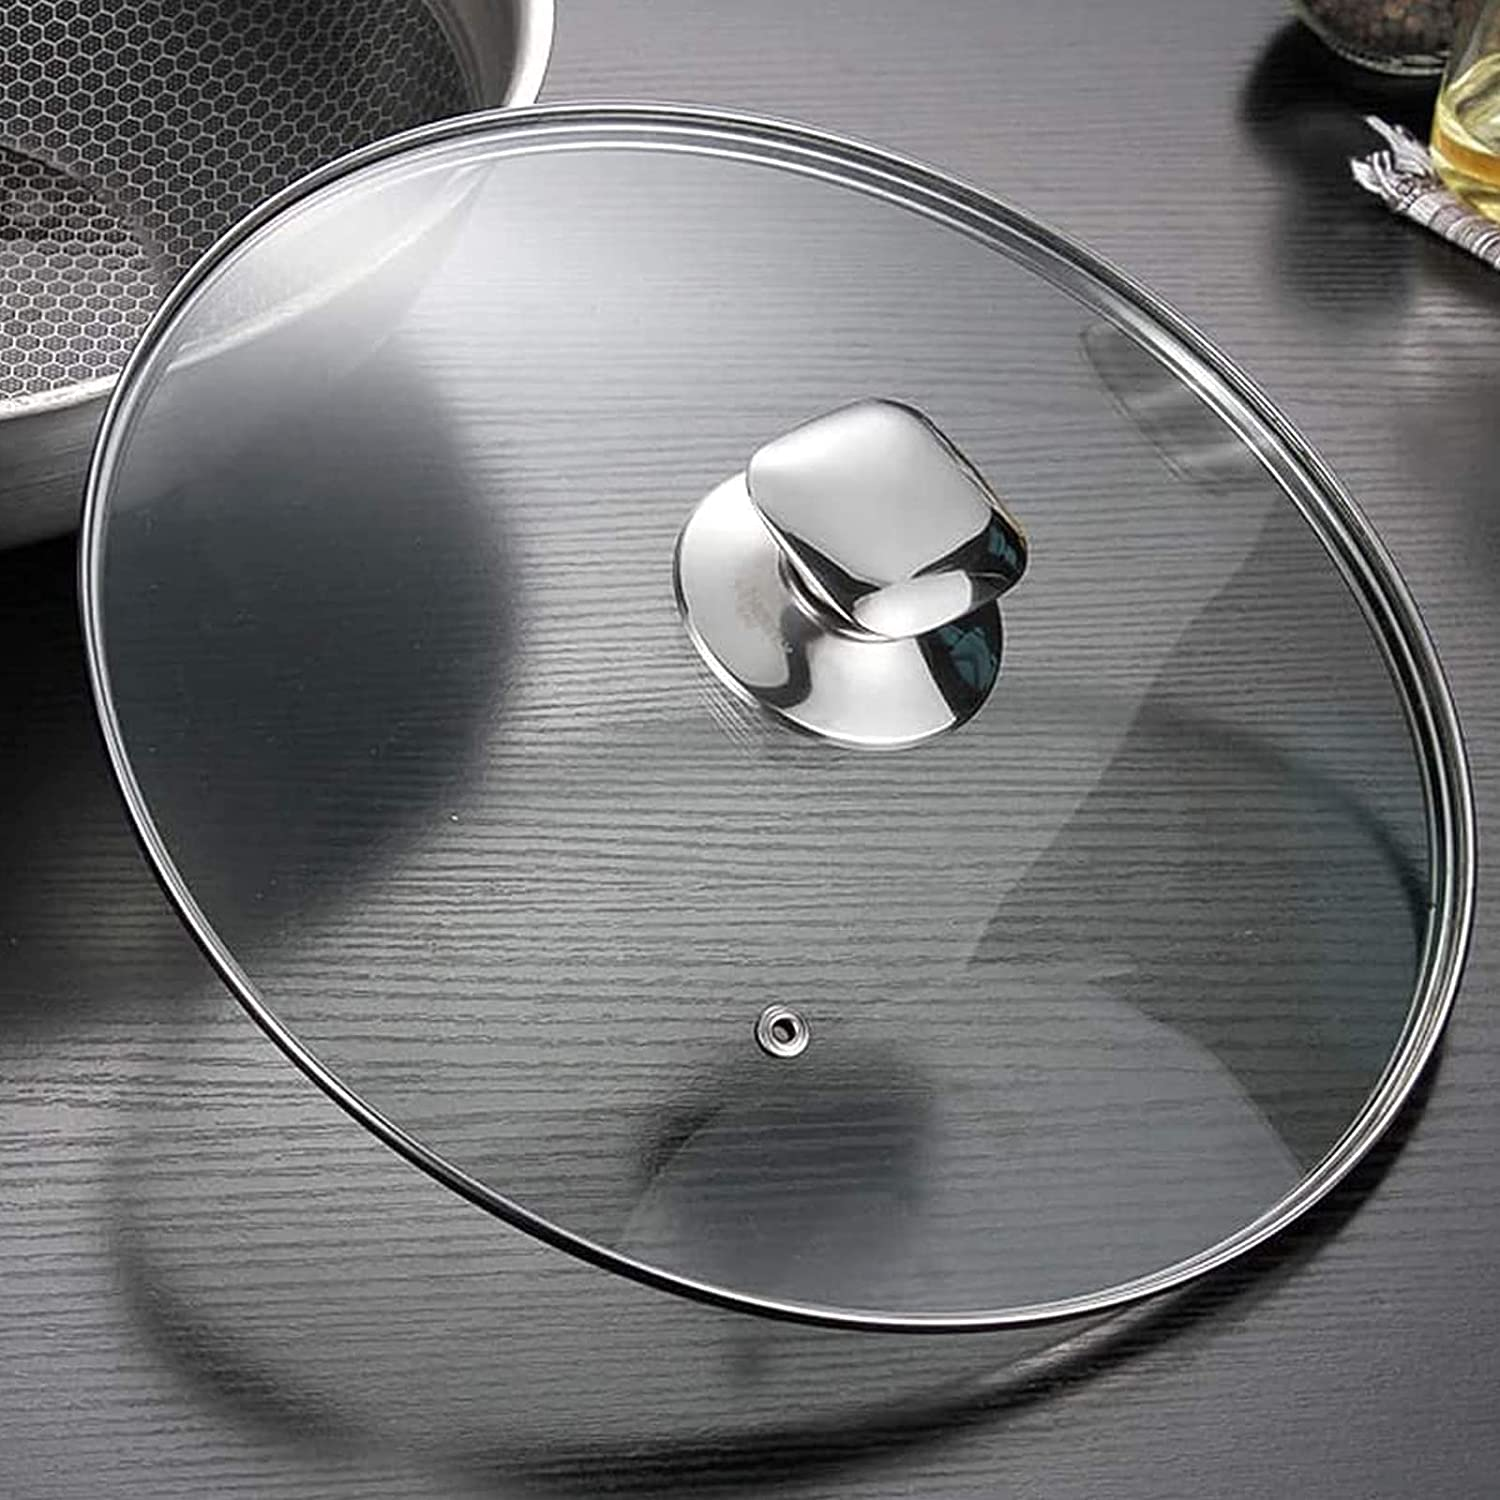 Ranking TOP3 Tempered Glass Sale special price Lid For Instant Transparent Pot Pan Co Household